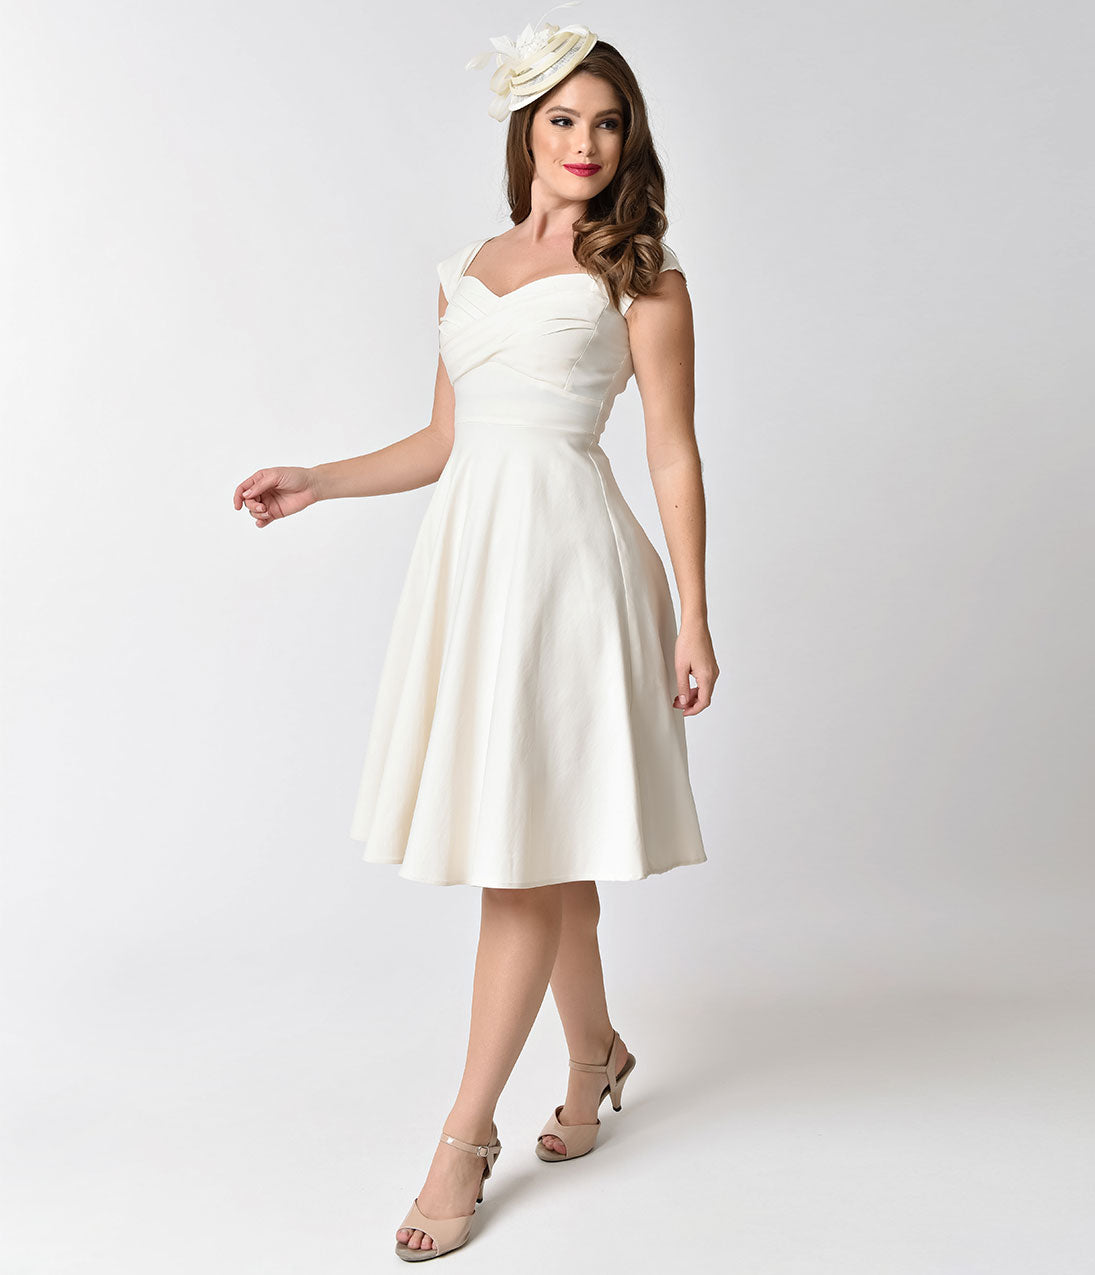 60s Wedding Dress | 1960s Style Wedding Dresses Stop Staring Mad Style Ivory Cap Sleeve Swing Dress $172.00 AT vintagedancer.com